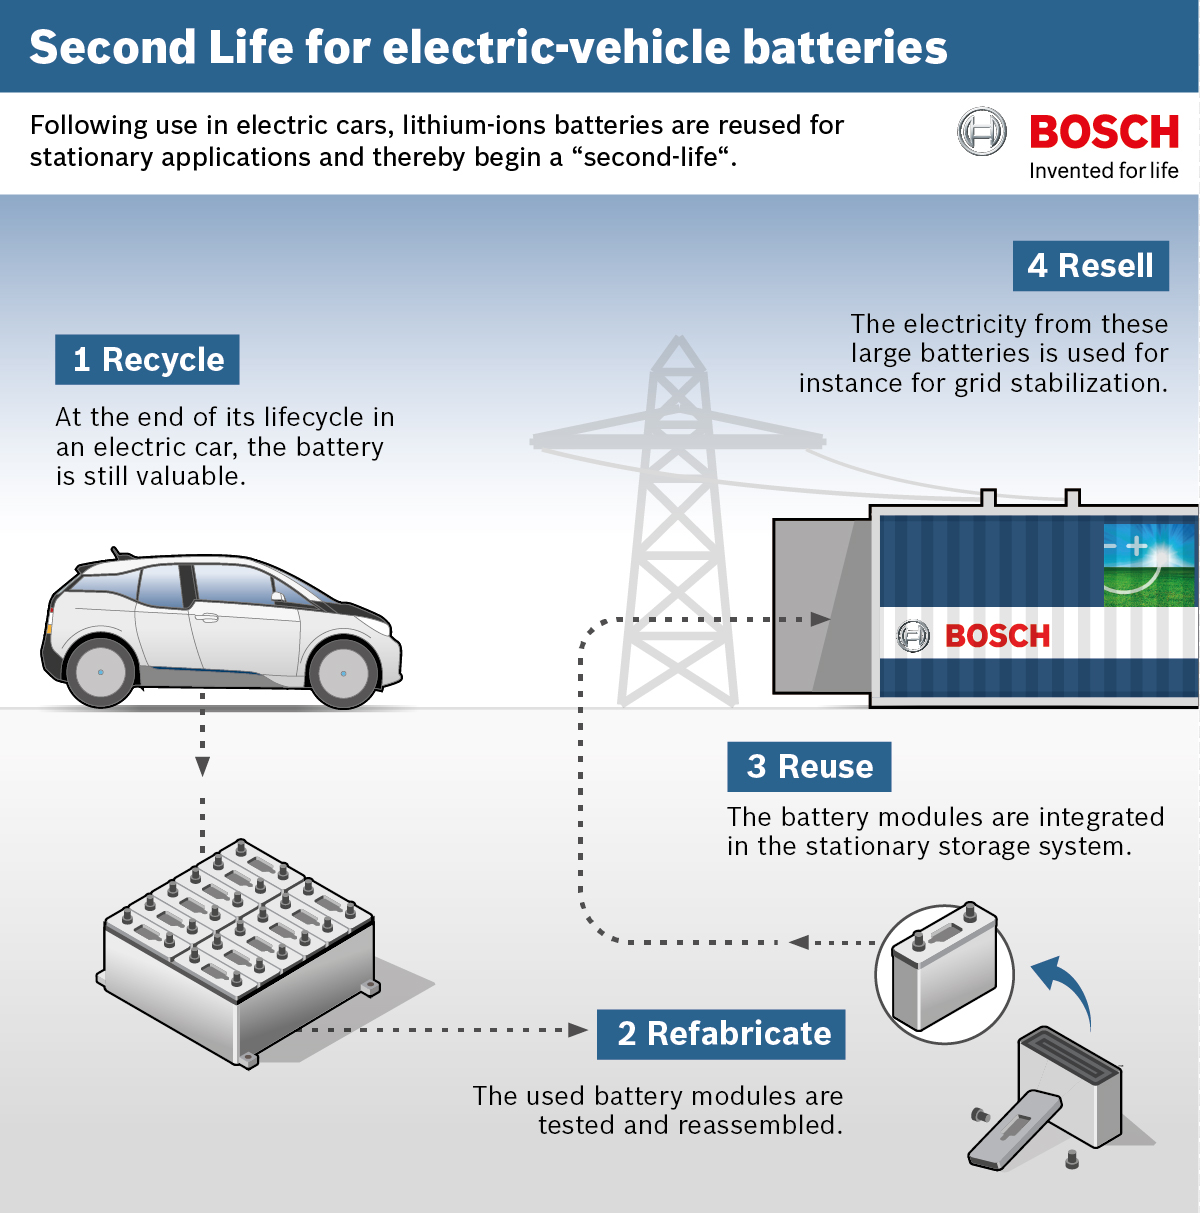 Second life for used electric-vehicle batteries